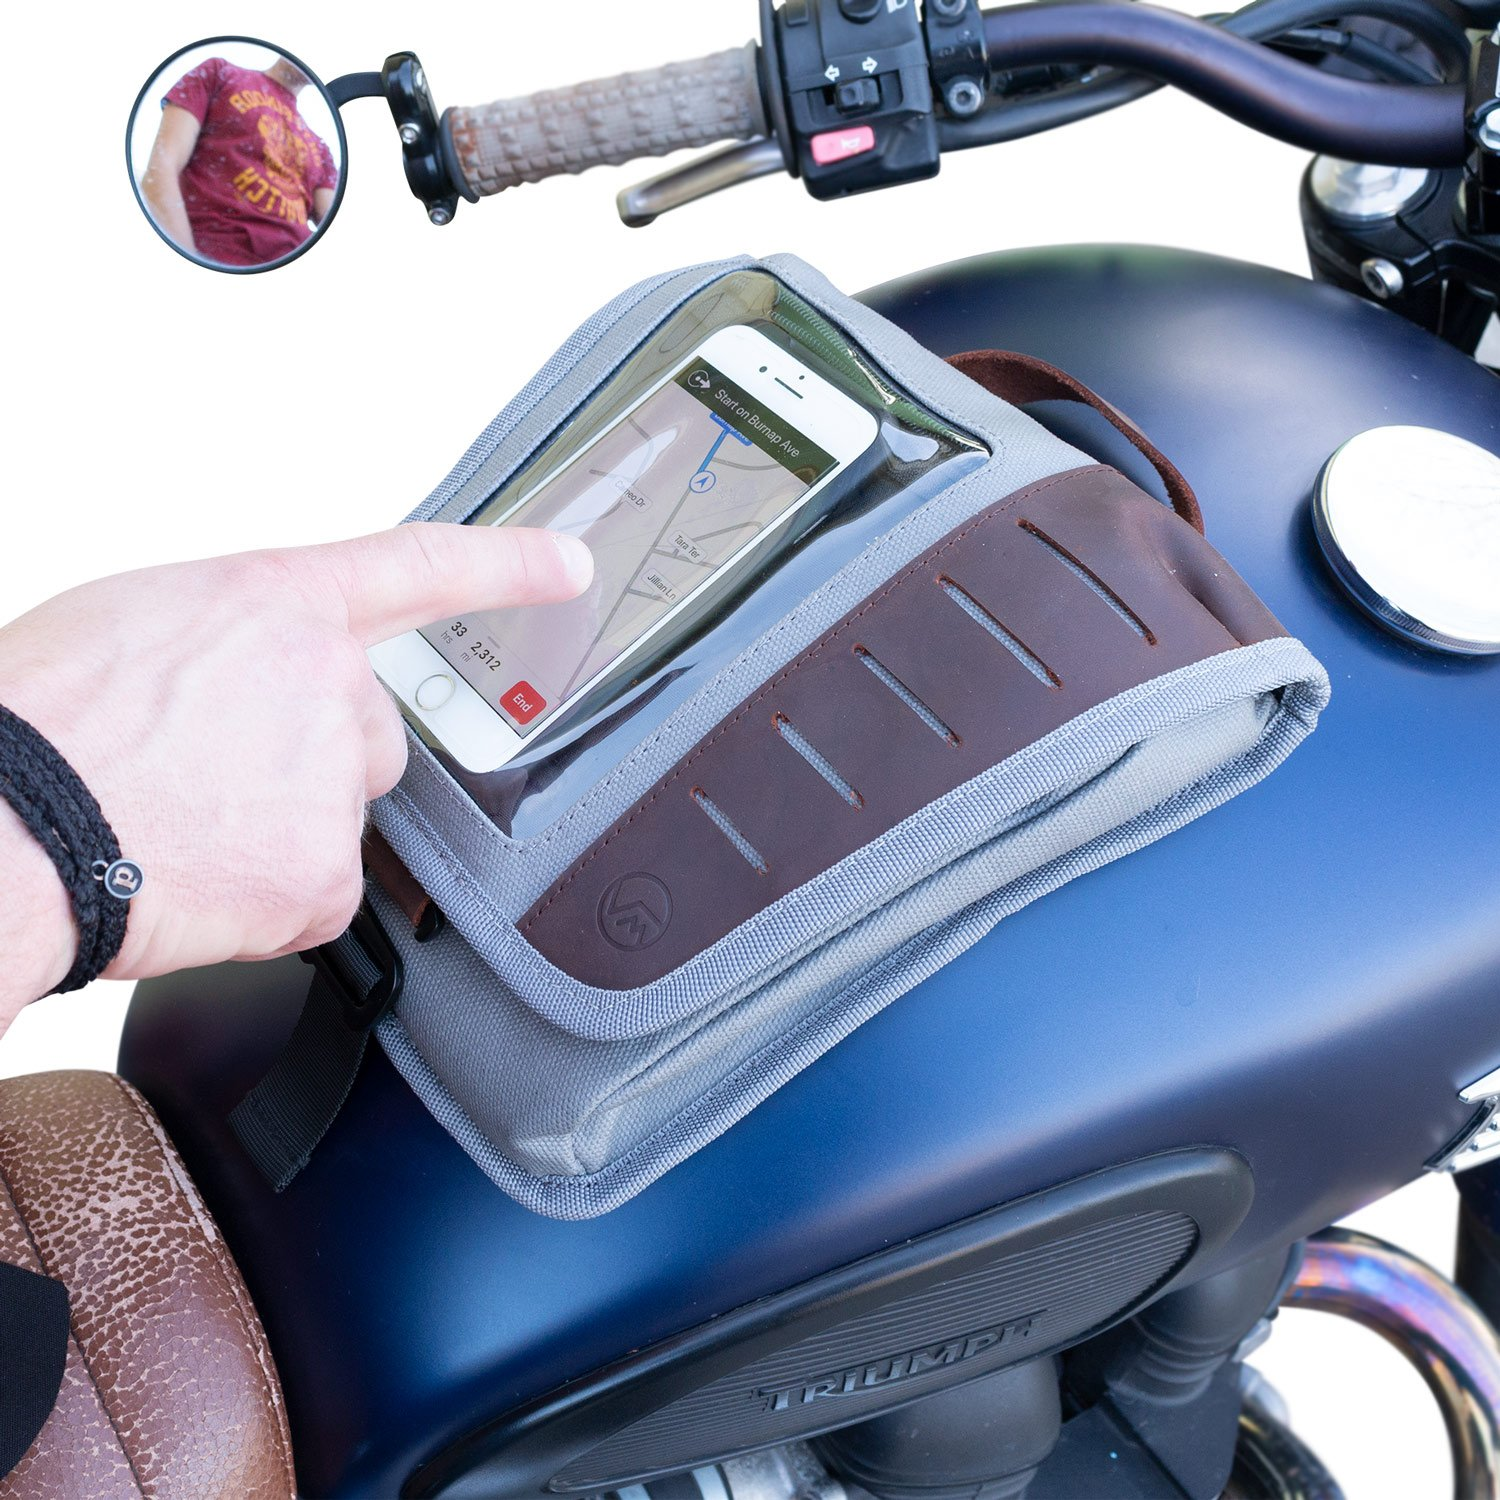 Vuz Moto Mini Tank Bag With Phone Window, Magnet Mounting System, Multiple Compartments And Leather Handcrafted Finish